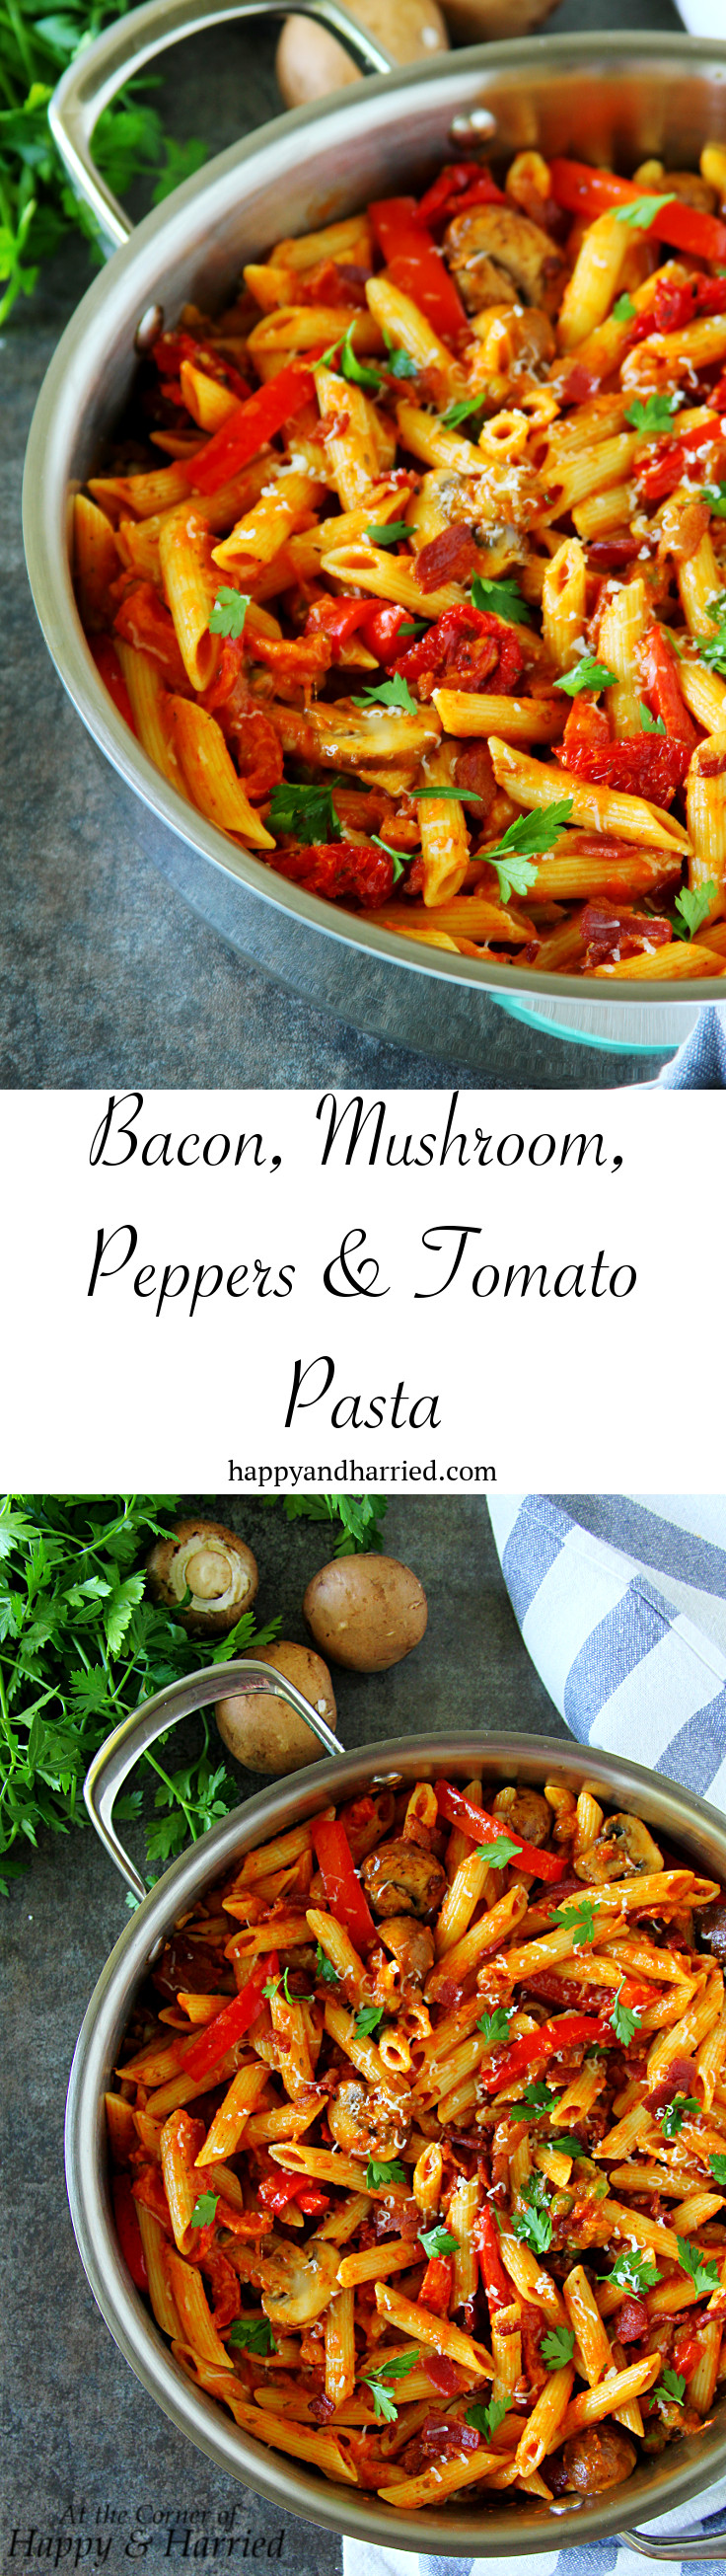 Bacon, Mushroom, Peppers & Tomato Pasta